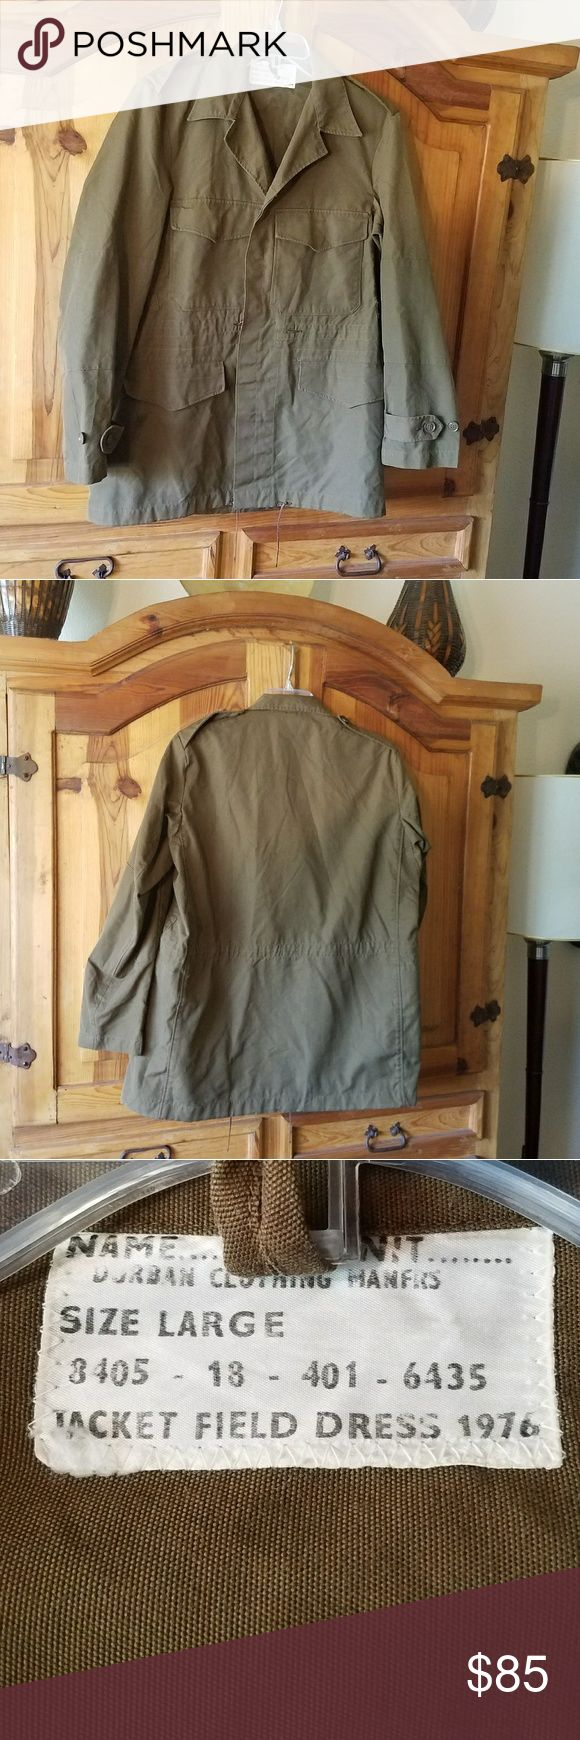 Military Field Jacket 1976 Military Field Jacket 1976. This 41 year old jacket is in like new condition. Jackets & Coats Military & Field